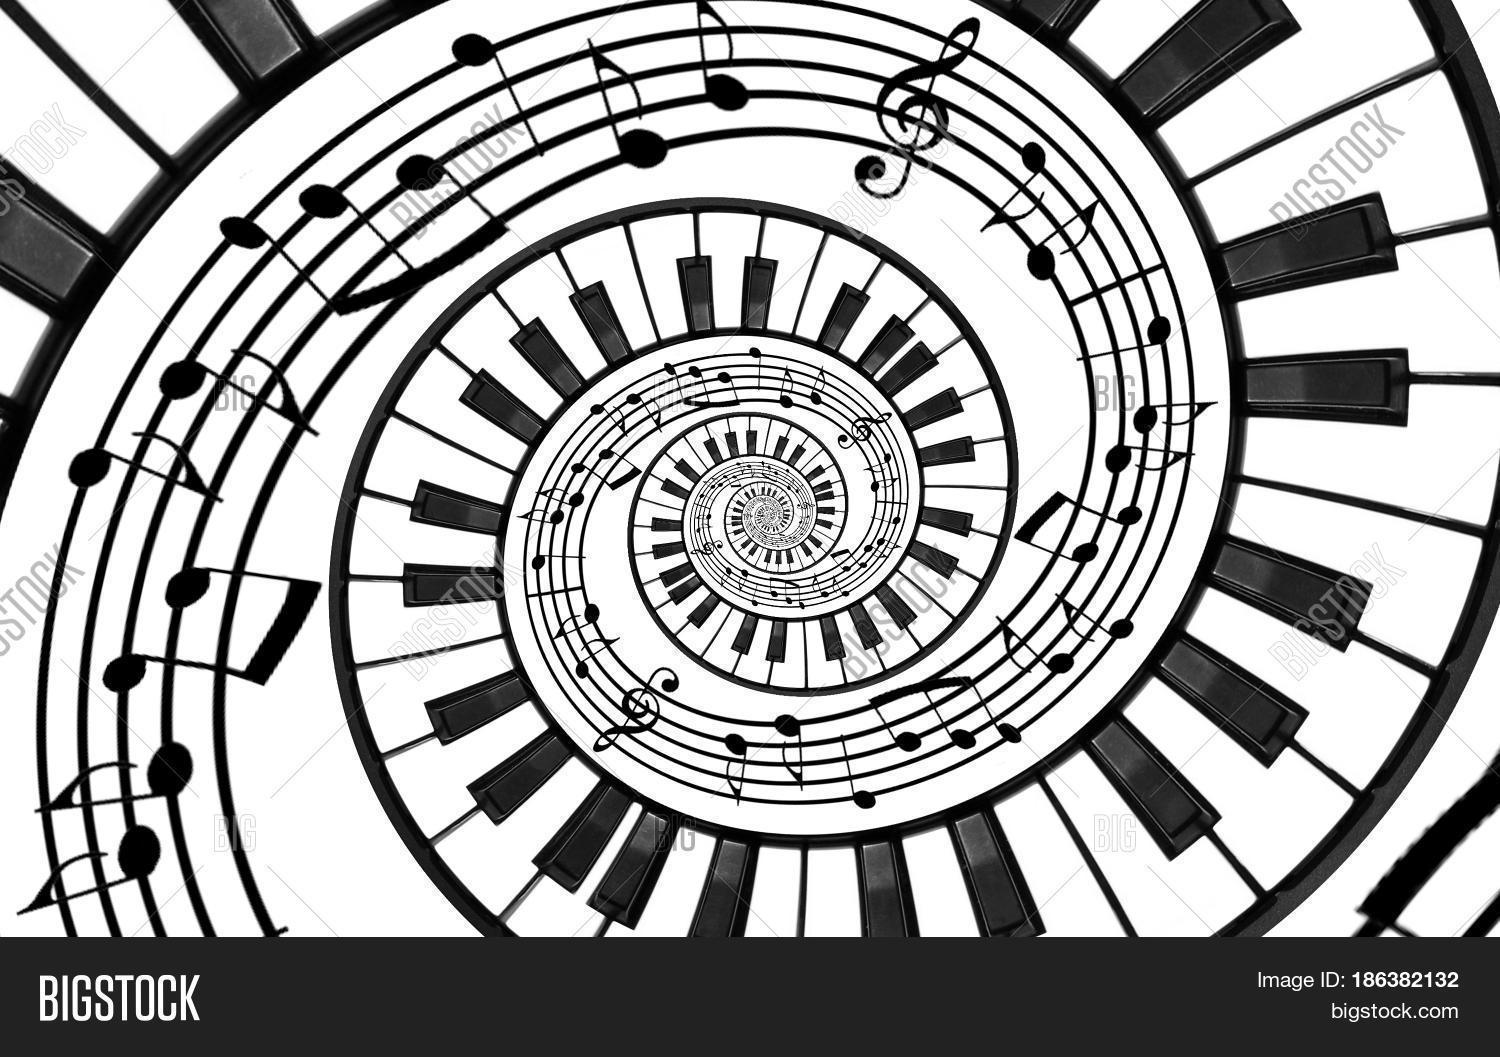 Piano keyboard printed music abstract fractal spiral pattern background black and white piano keys round